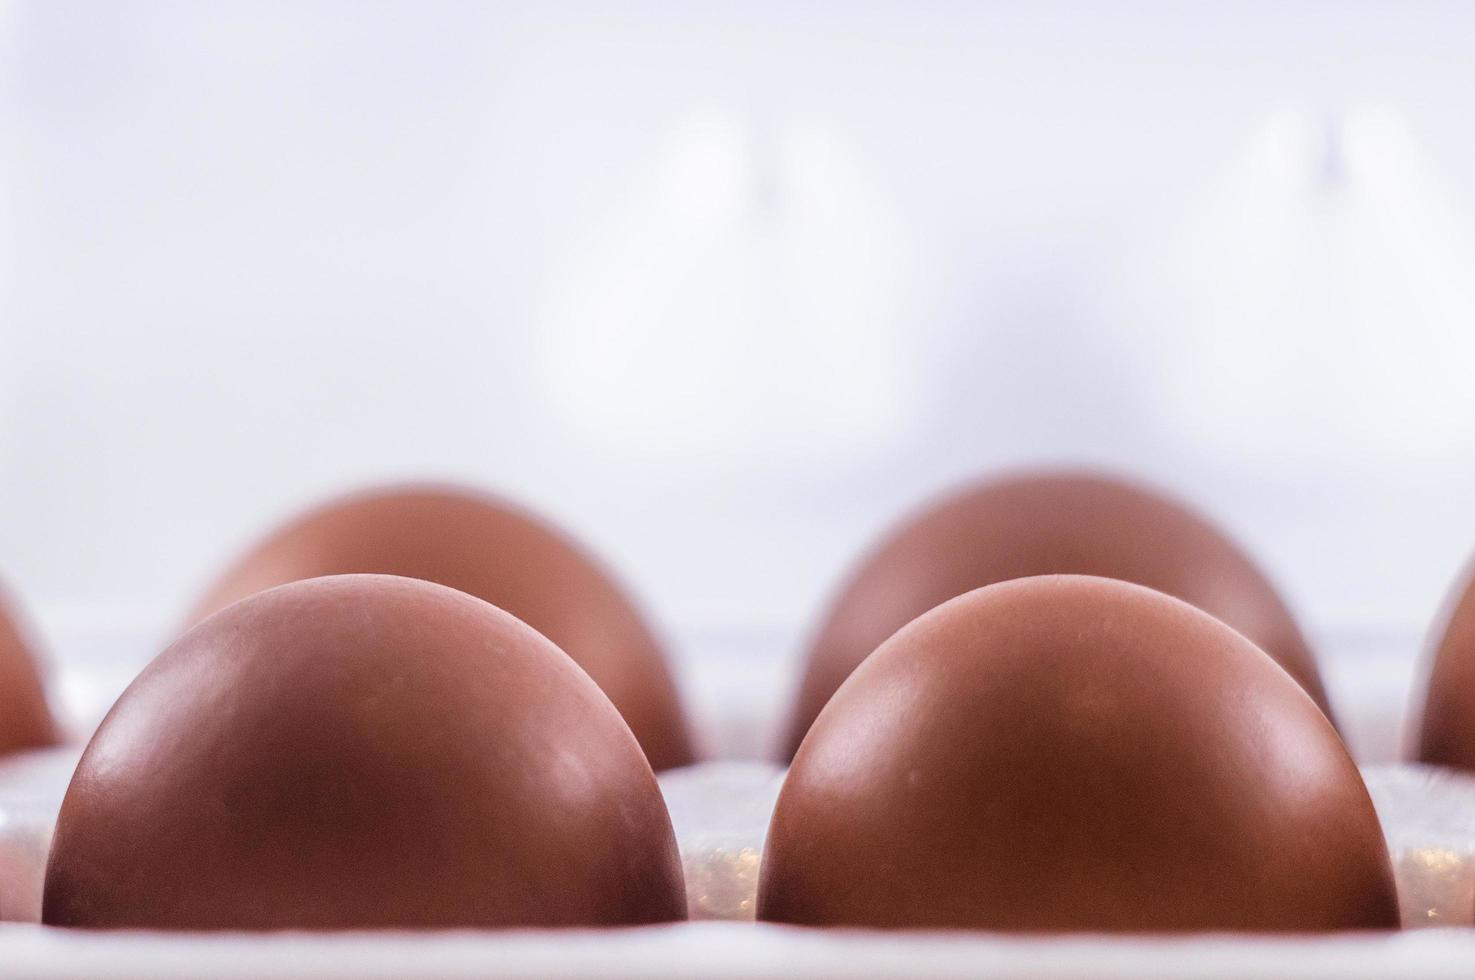 Four eggs in a package photo